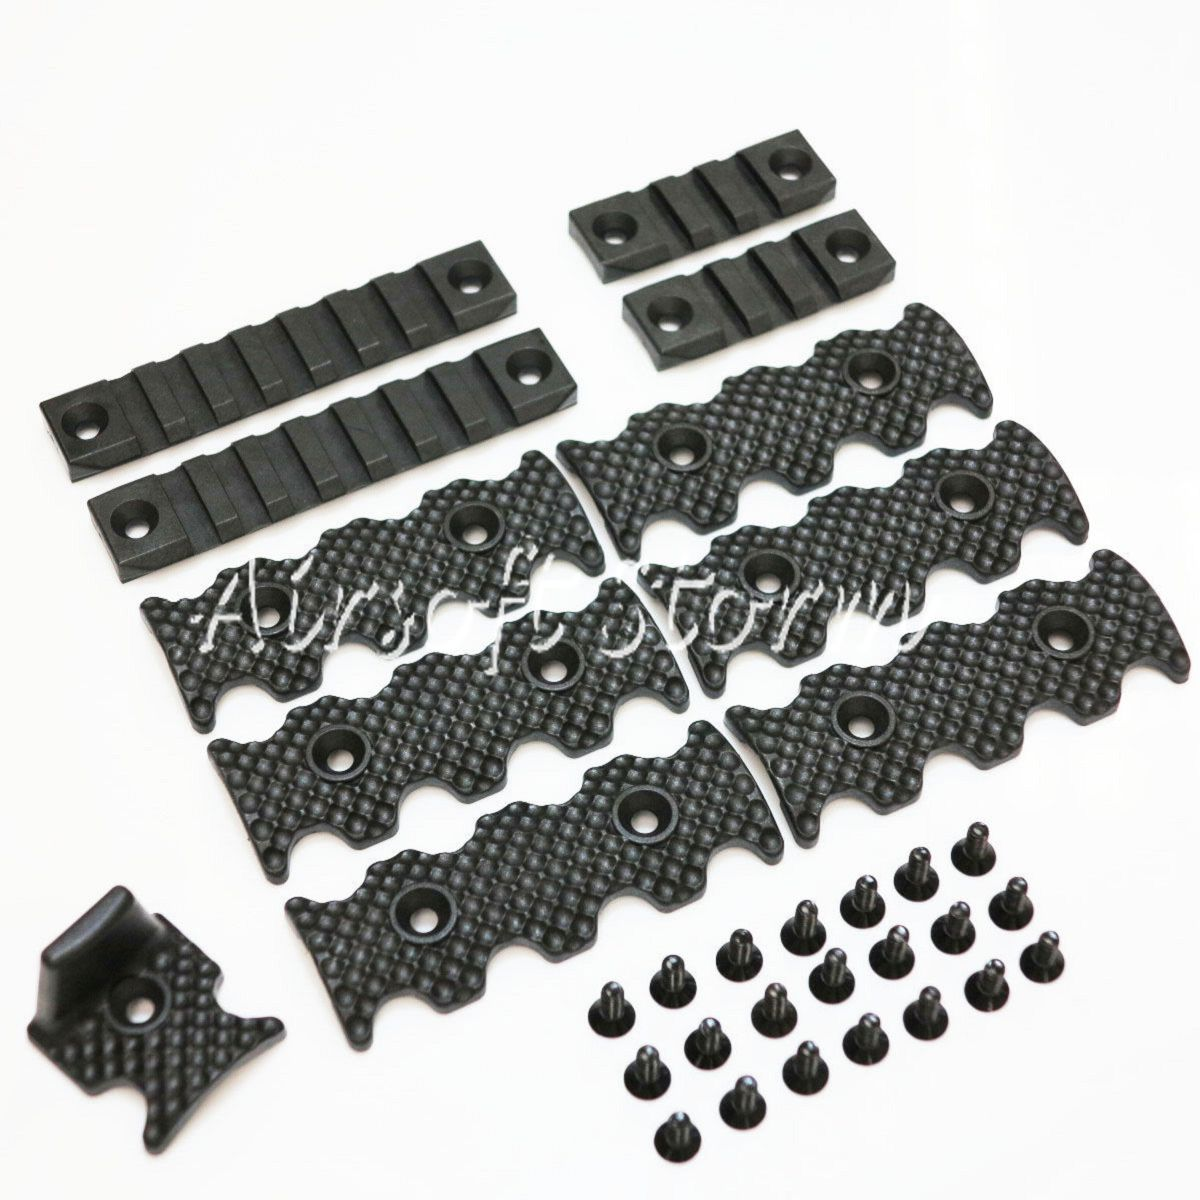 Shooting Gear PTS Centurion Arms CMR Rail Accessory Pack Set Black